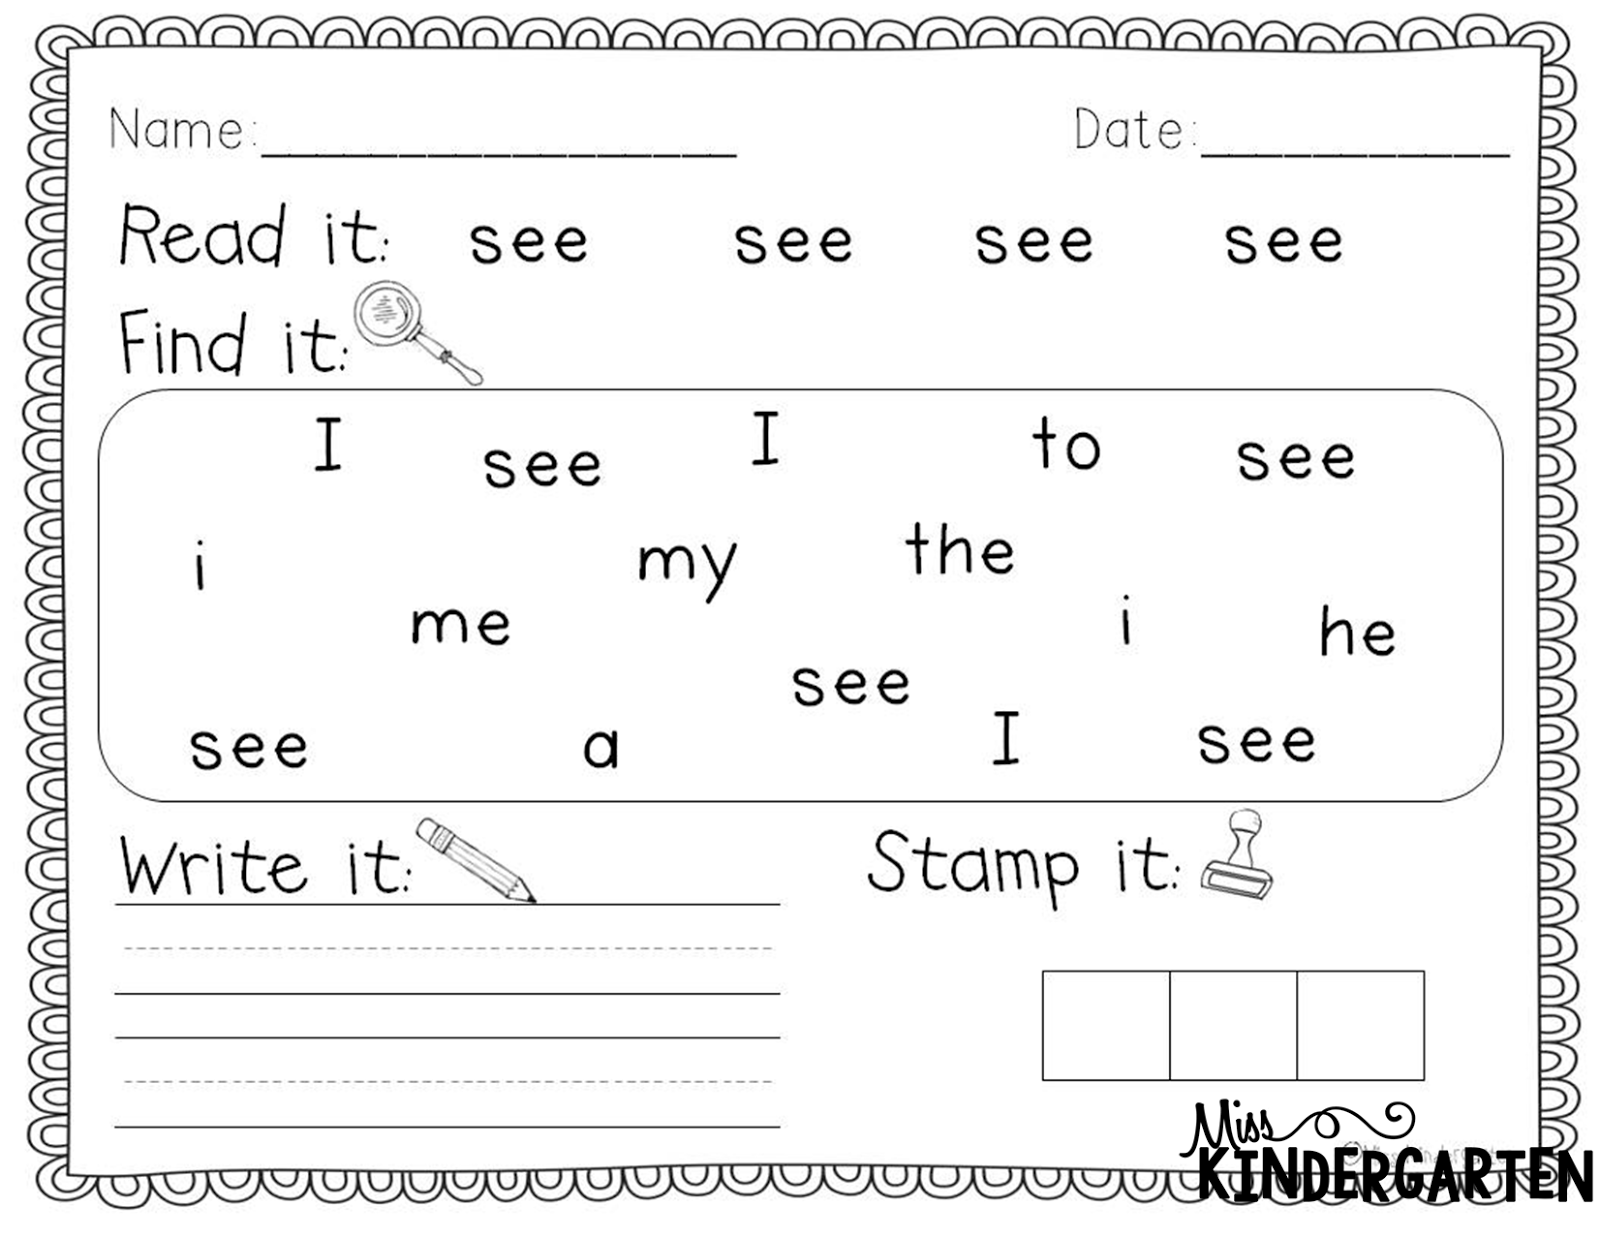 the cover for printable preschool  bingo worksheets to word sight use Sometimes words daubers little we :)